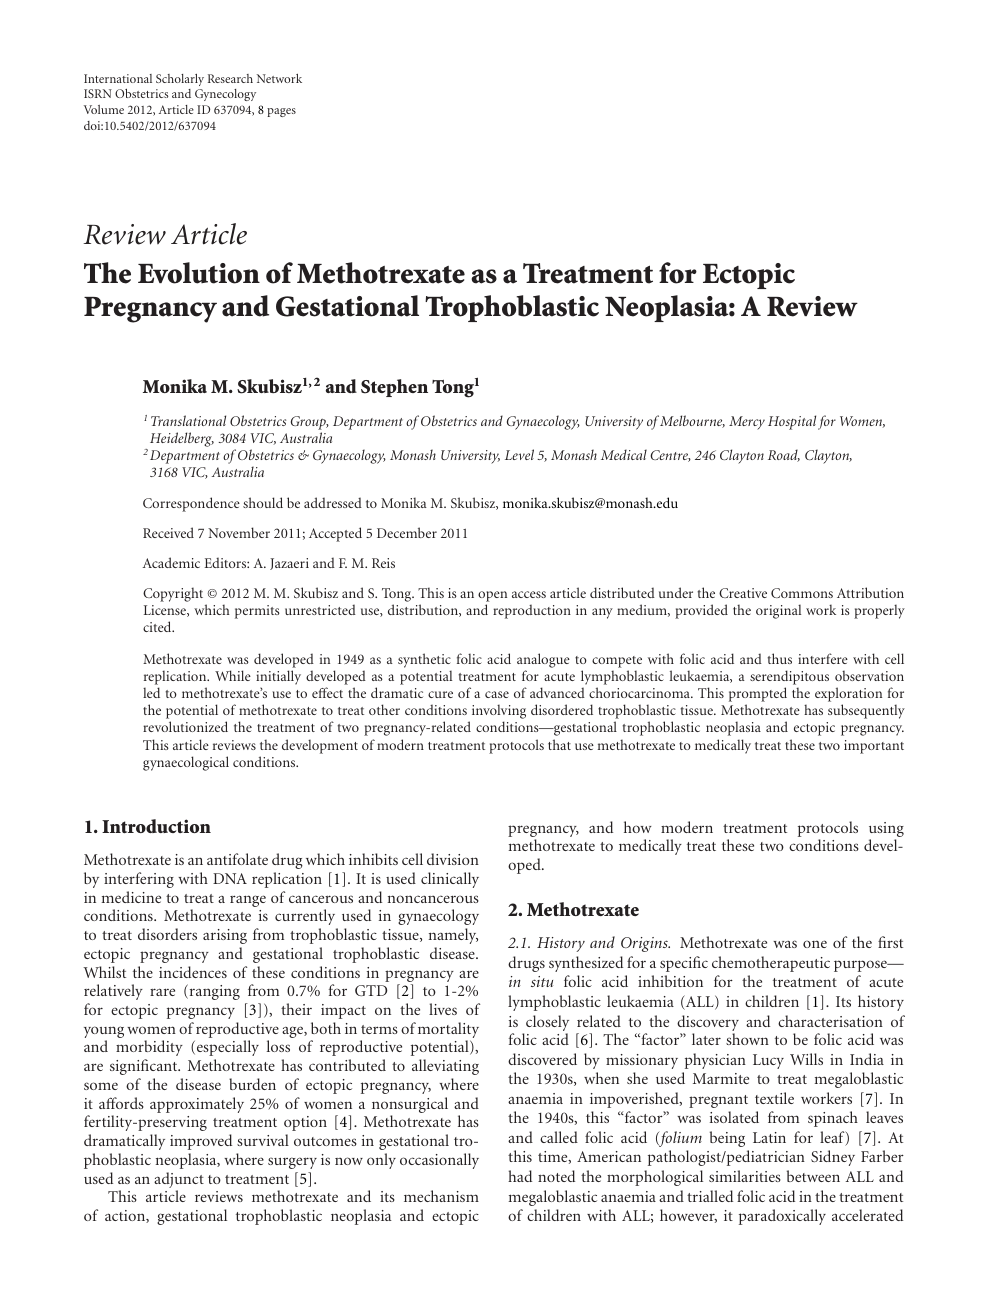 The Evolution of Methotrexate as a Treatment for Ectopic